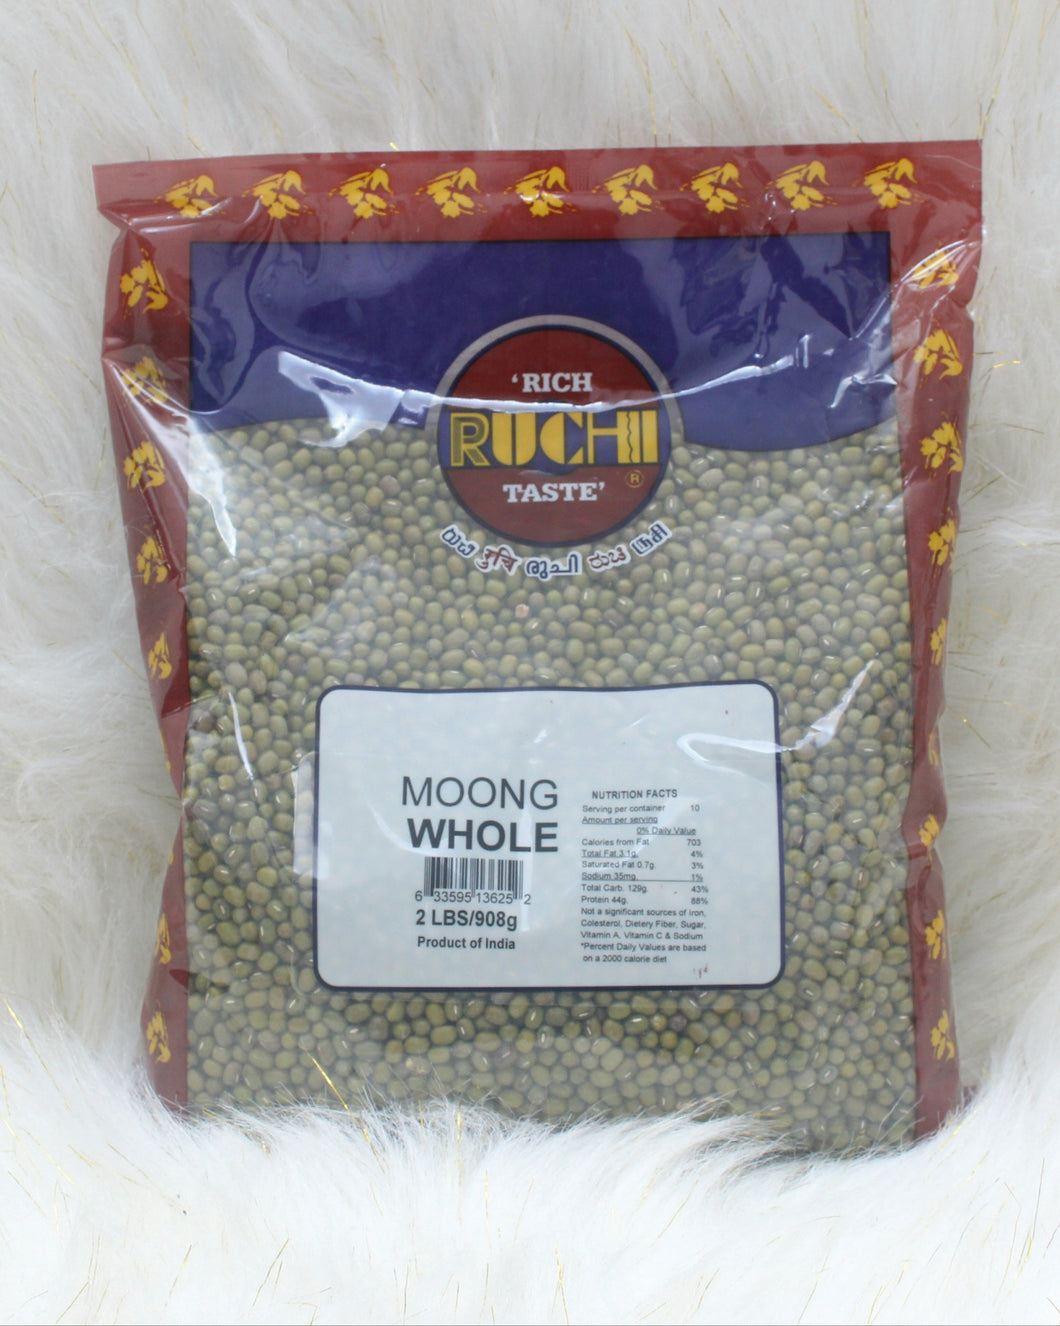 RICH TASTE| Moong Whole